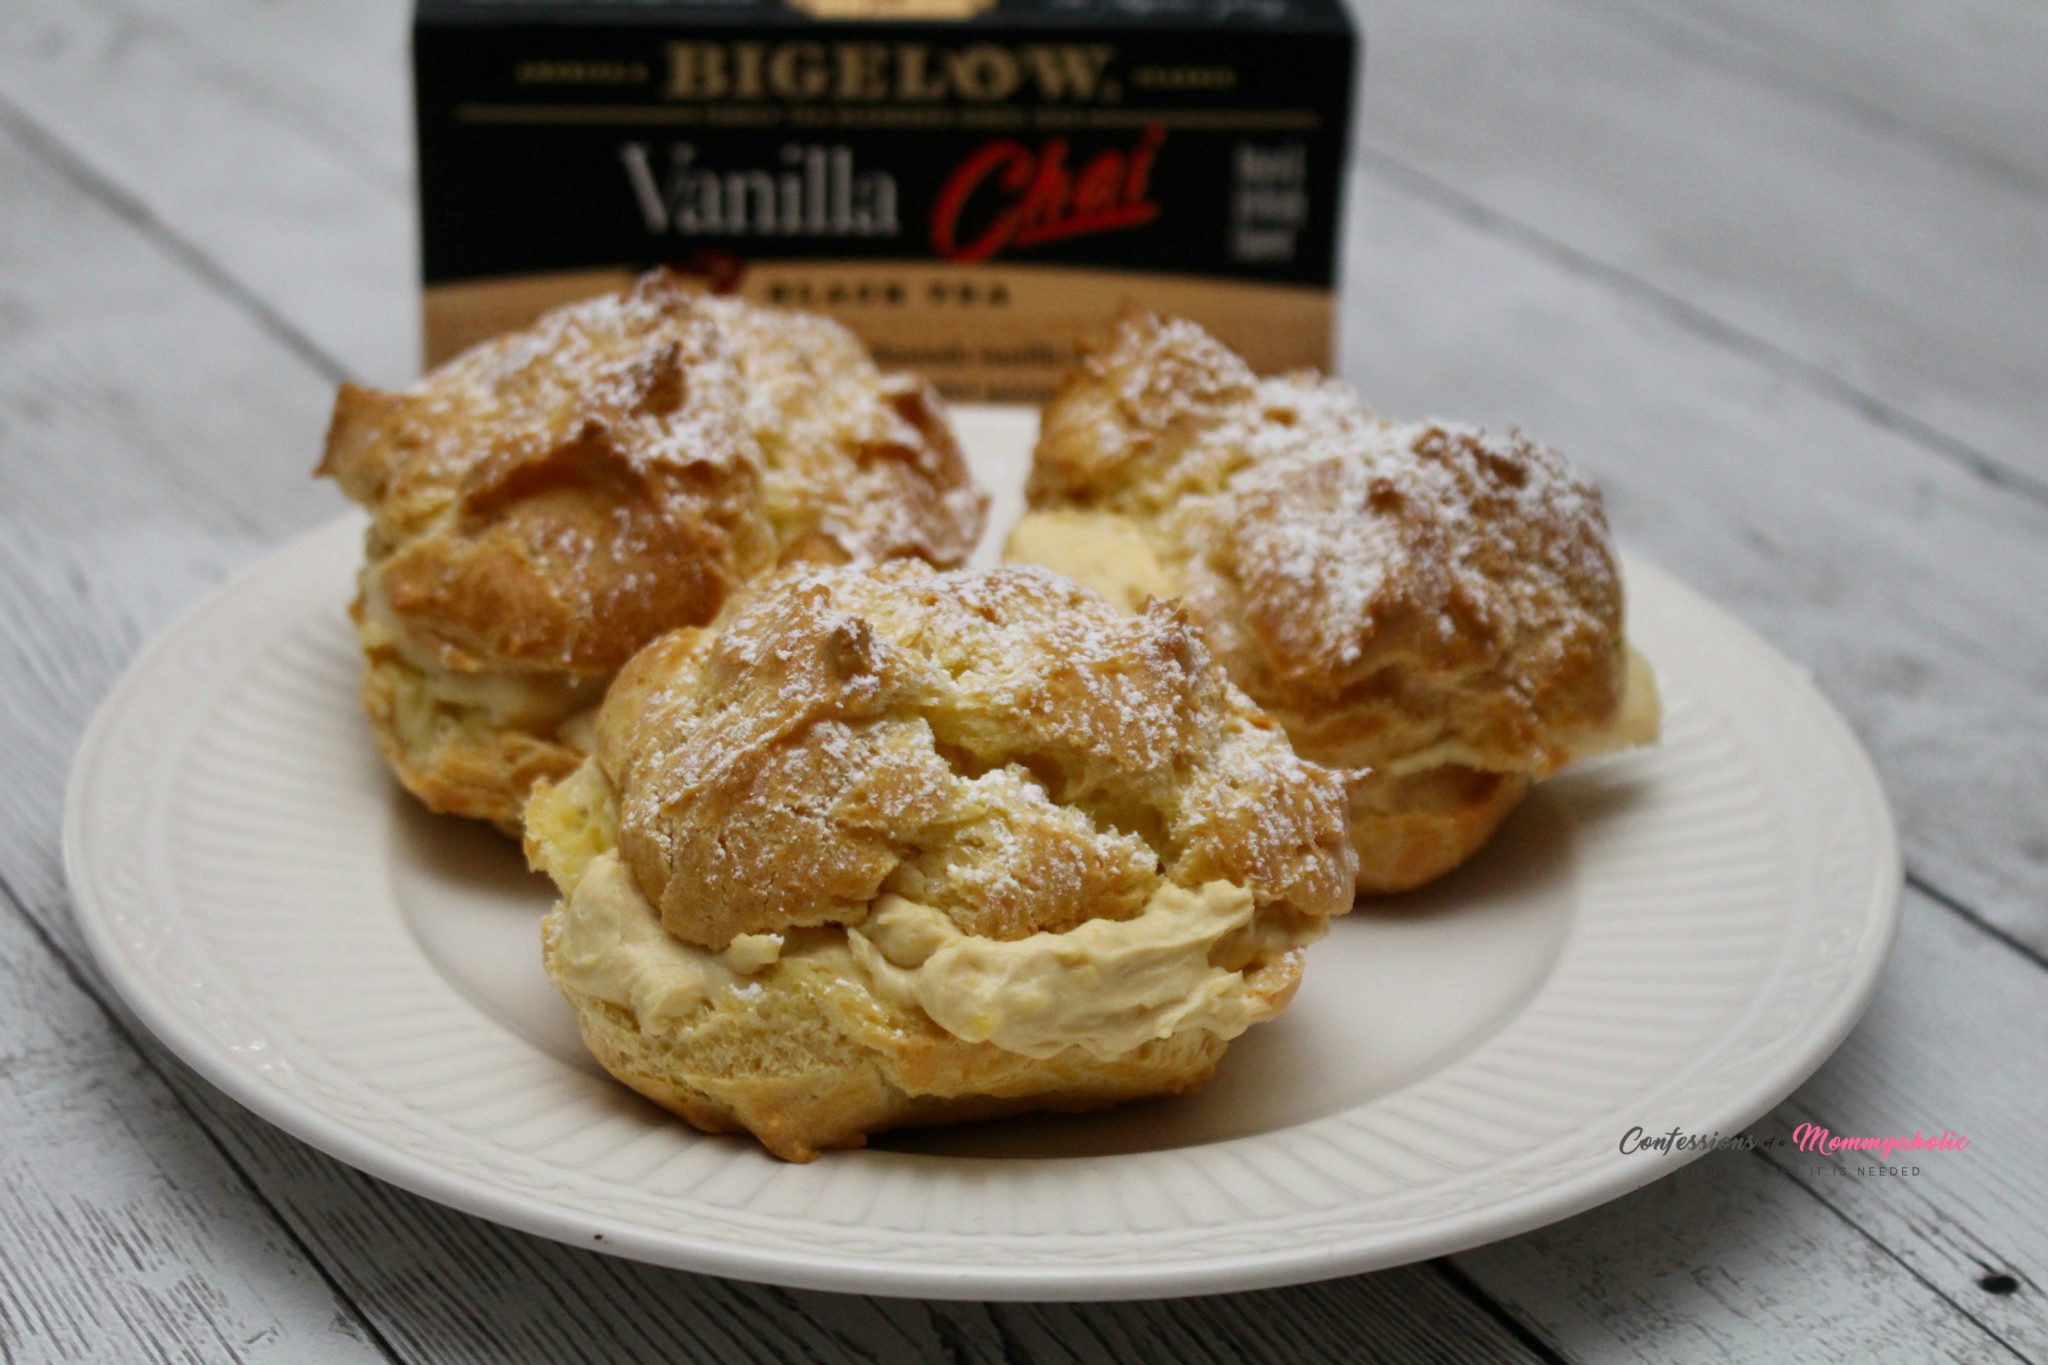 Cream Puffs and Bigelow Vanilla Chai Tea Package